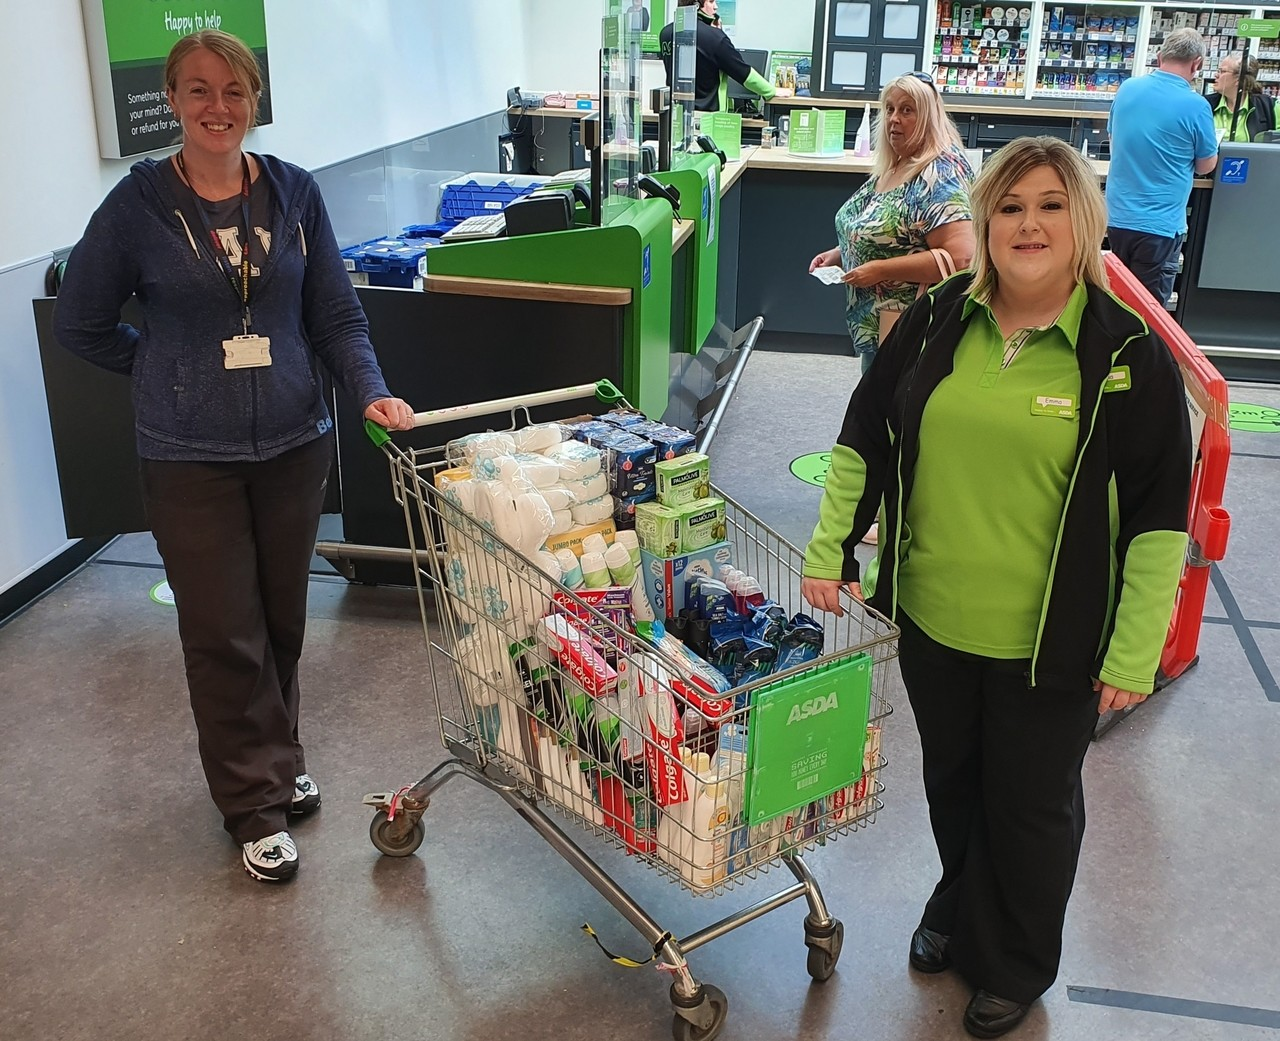 Shortlees Community Association donation | Asda Kilmarnock